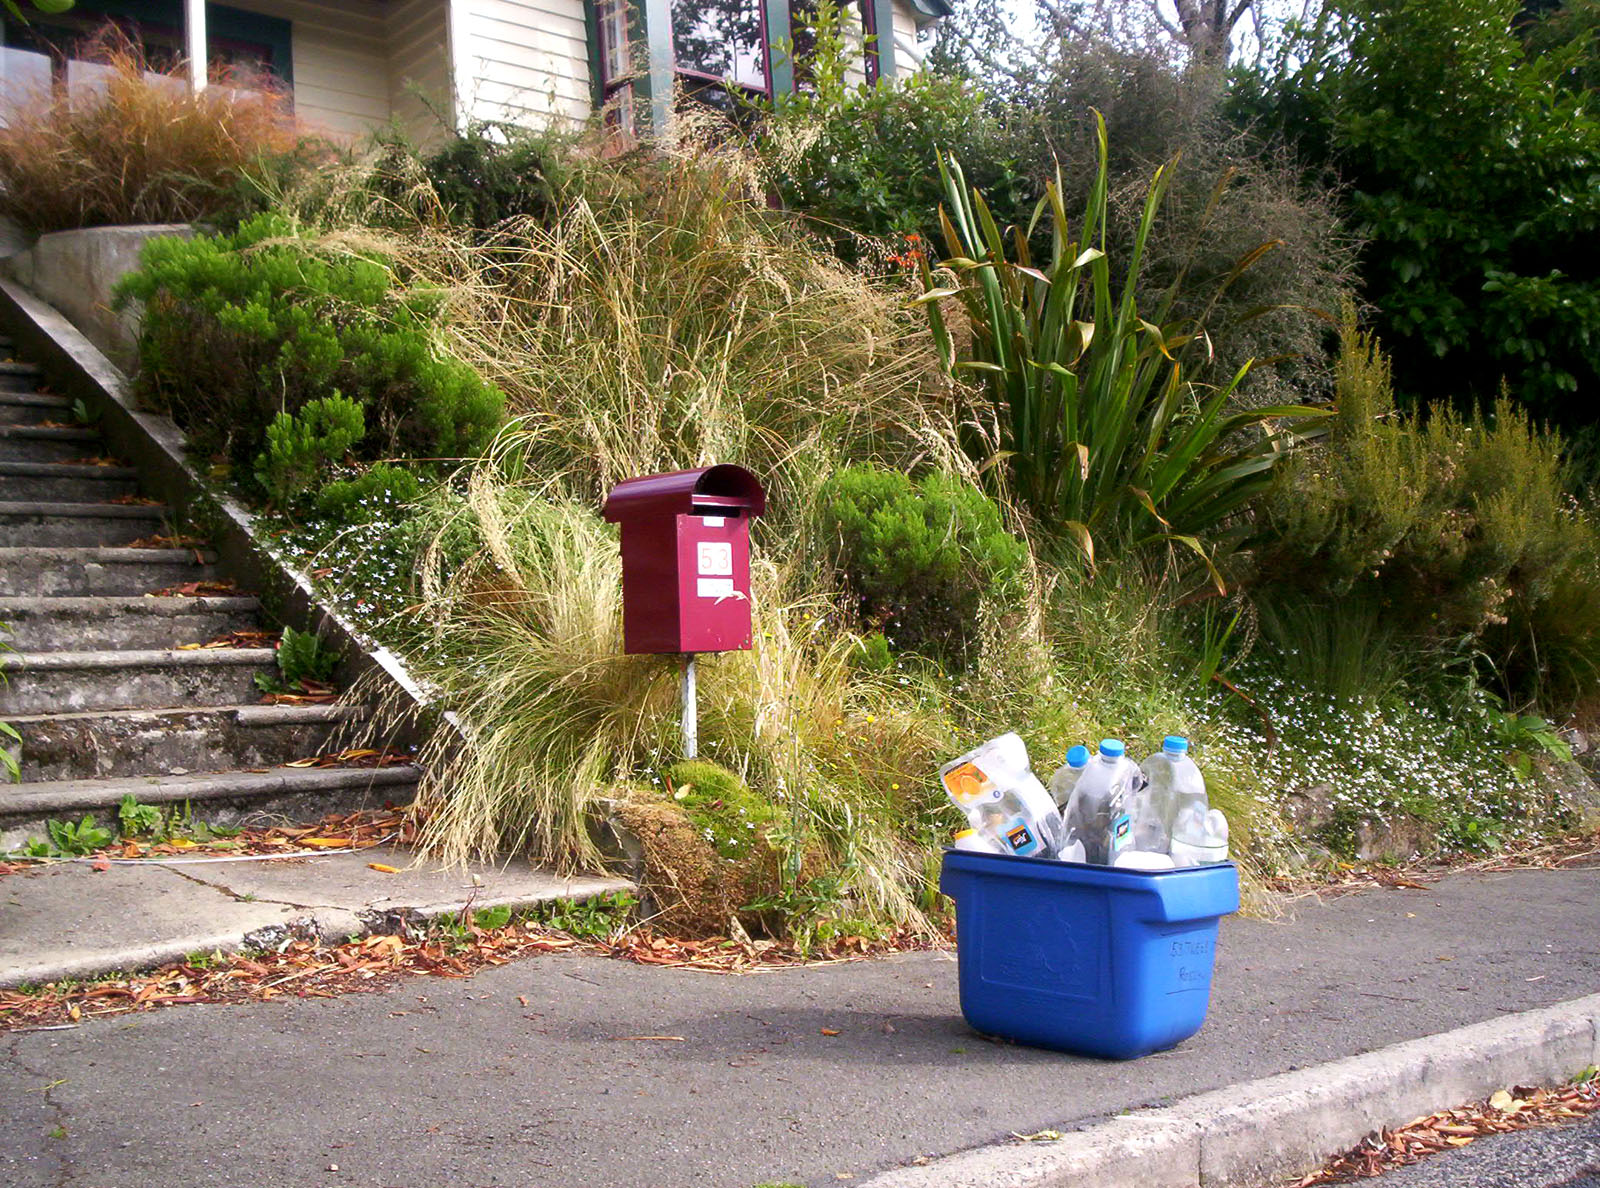 Tweed recycling and letterbox photo